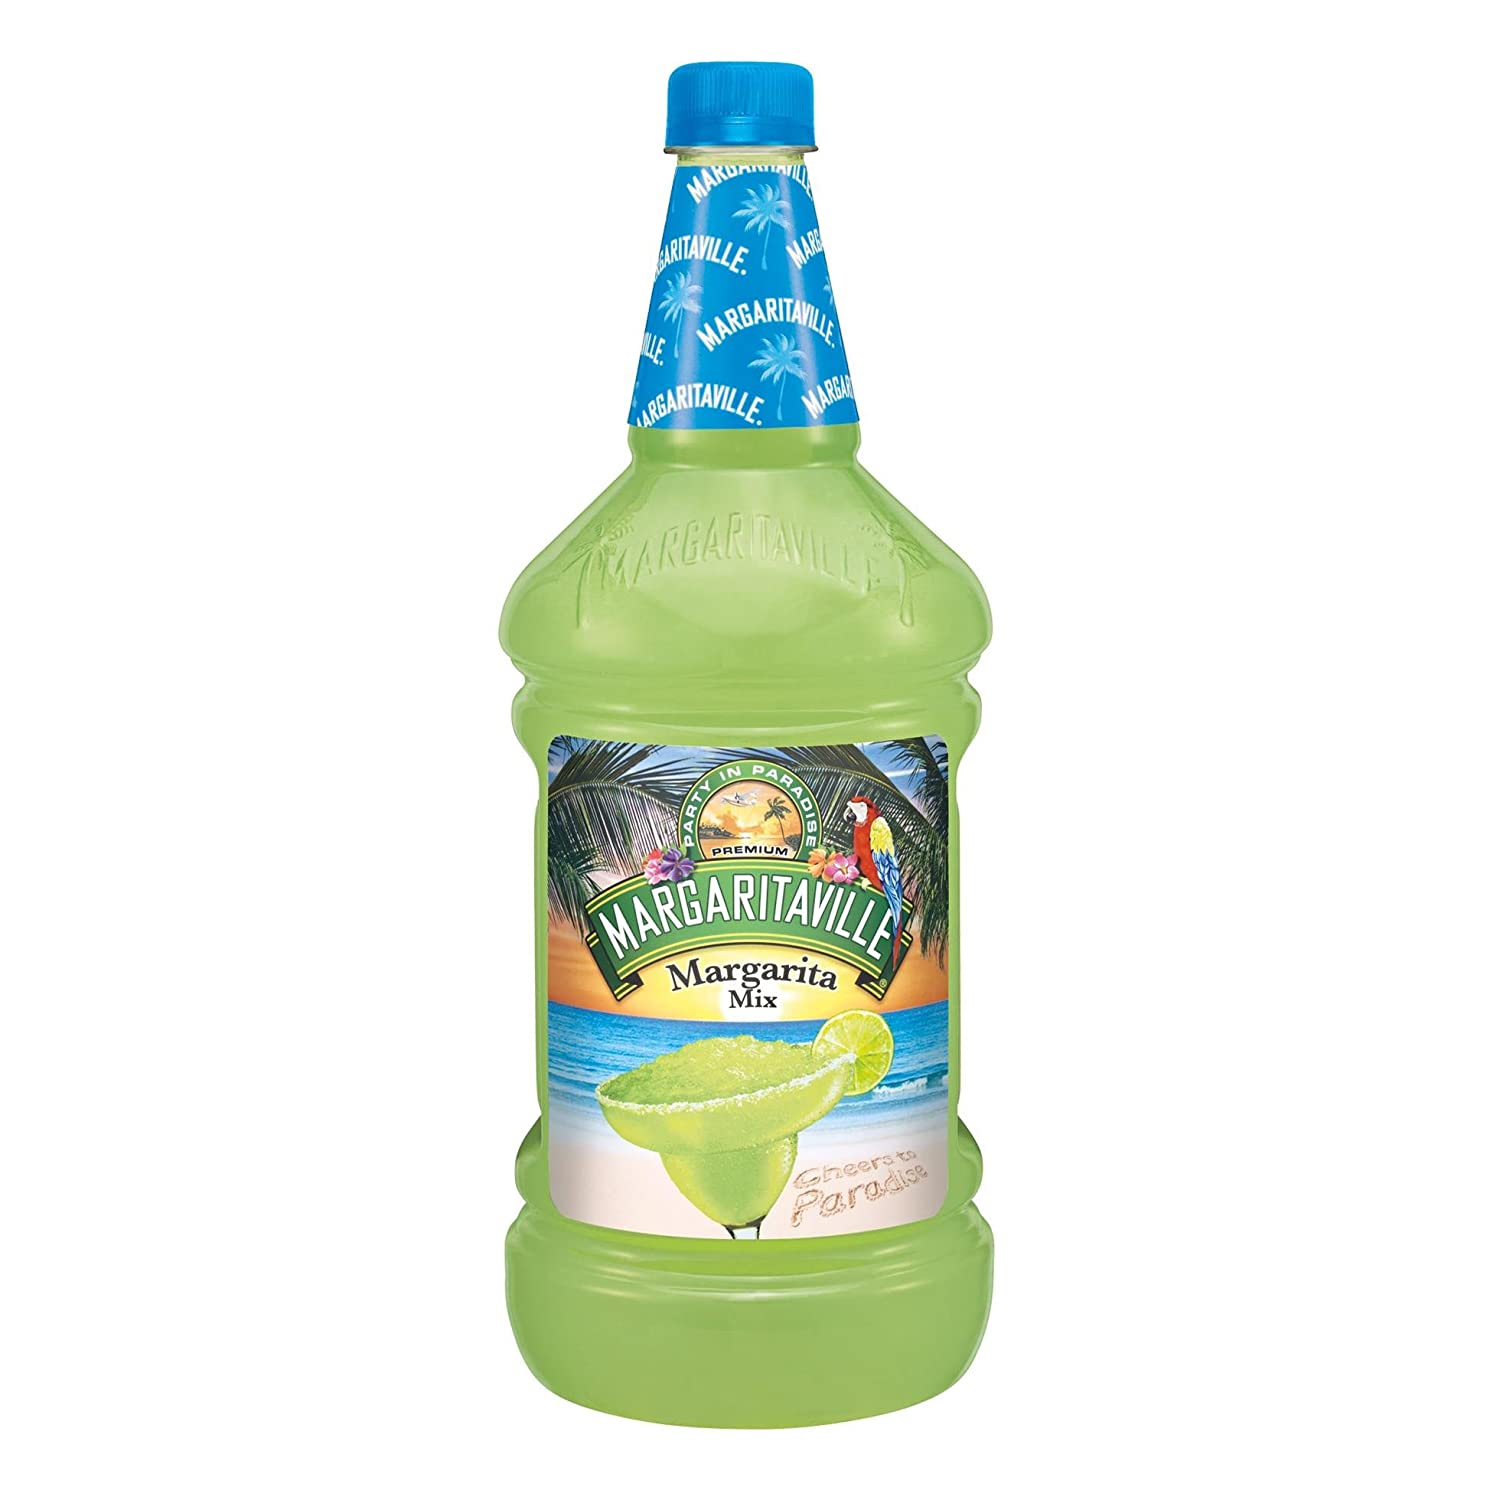 Margaritaville At Home: Margaritaville Boat Drink Cocktail